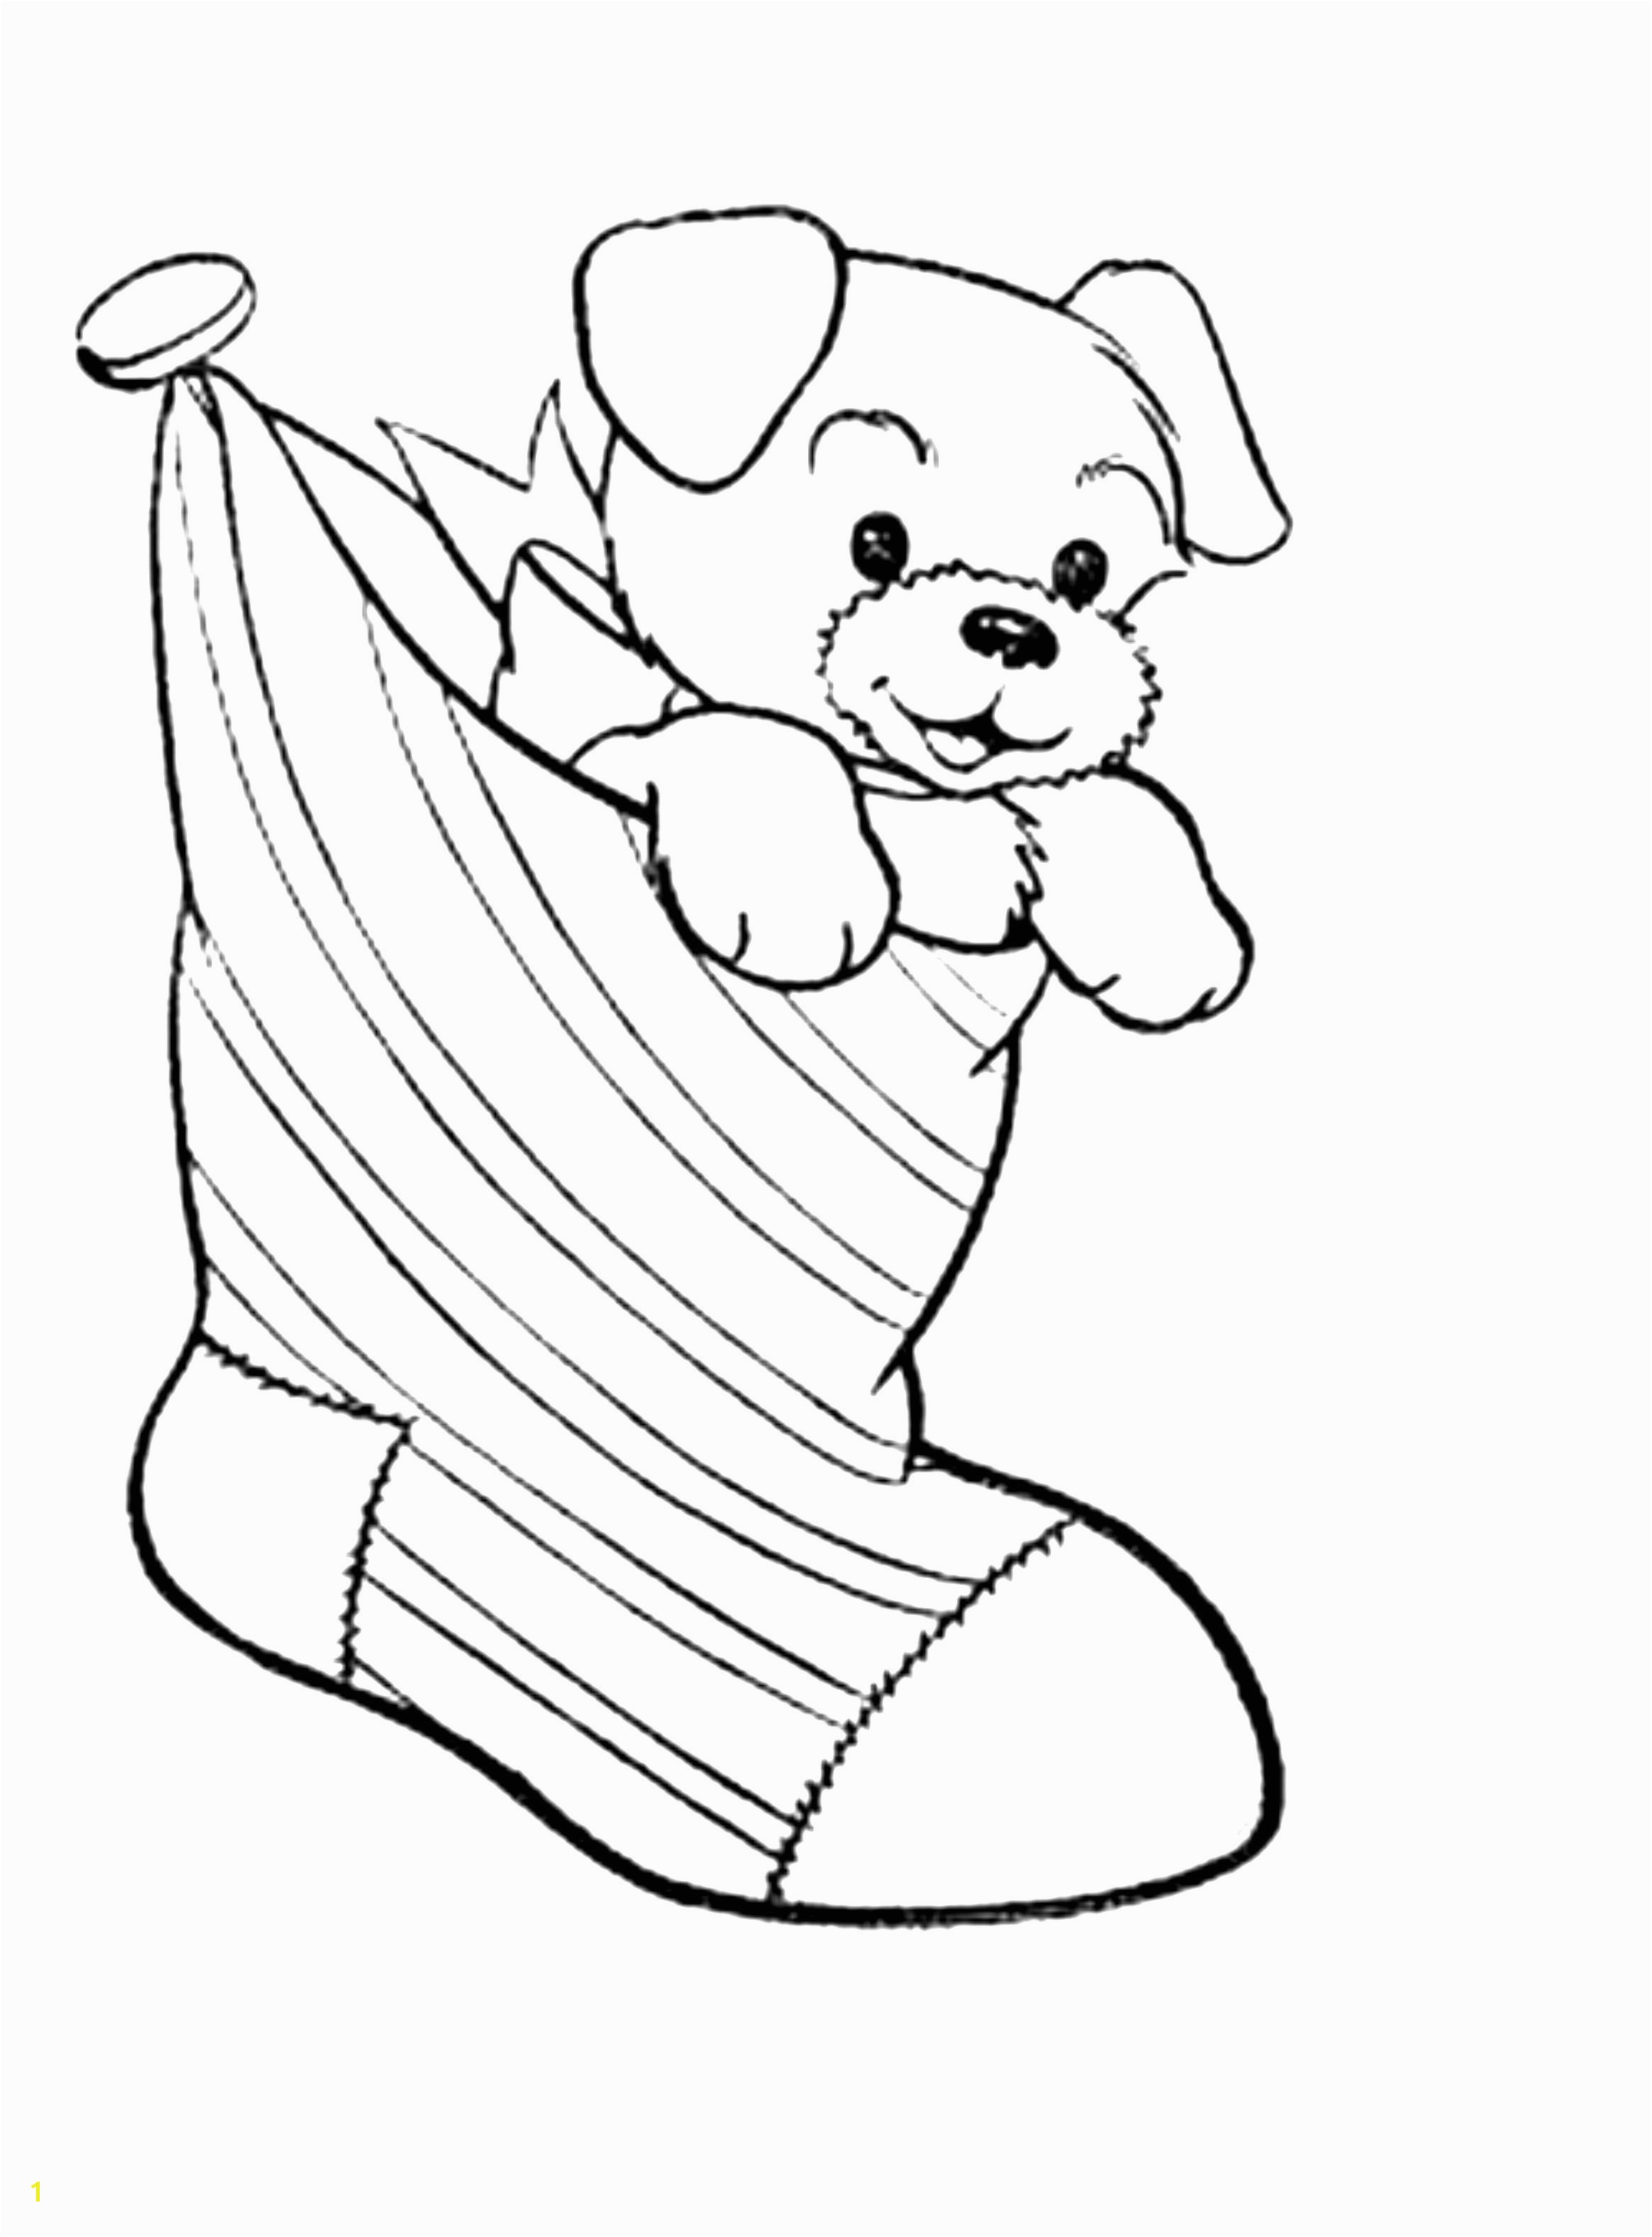 Coloring Pages Crayola Printable | Free Coloring Sheets